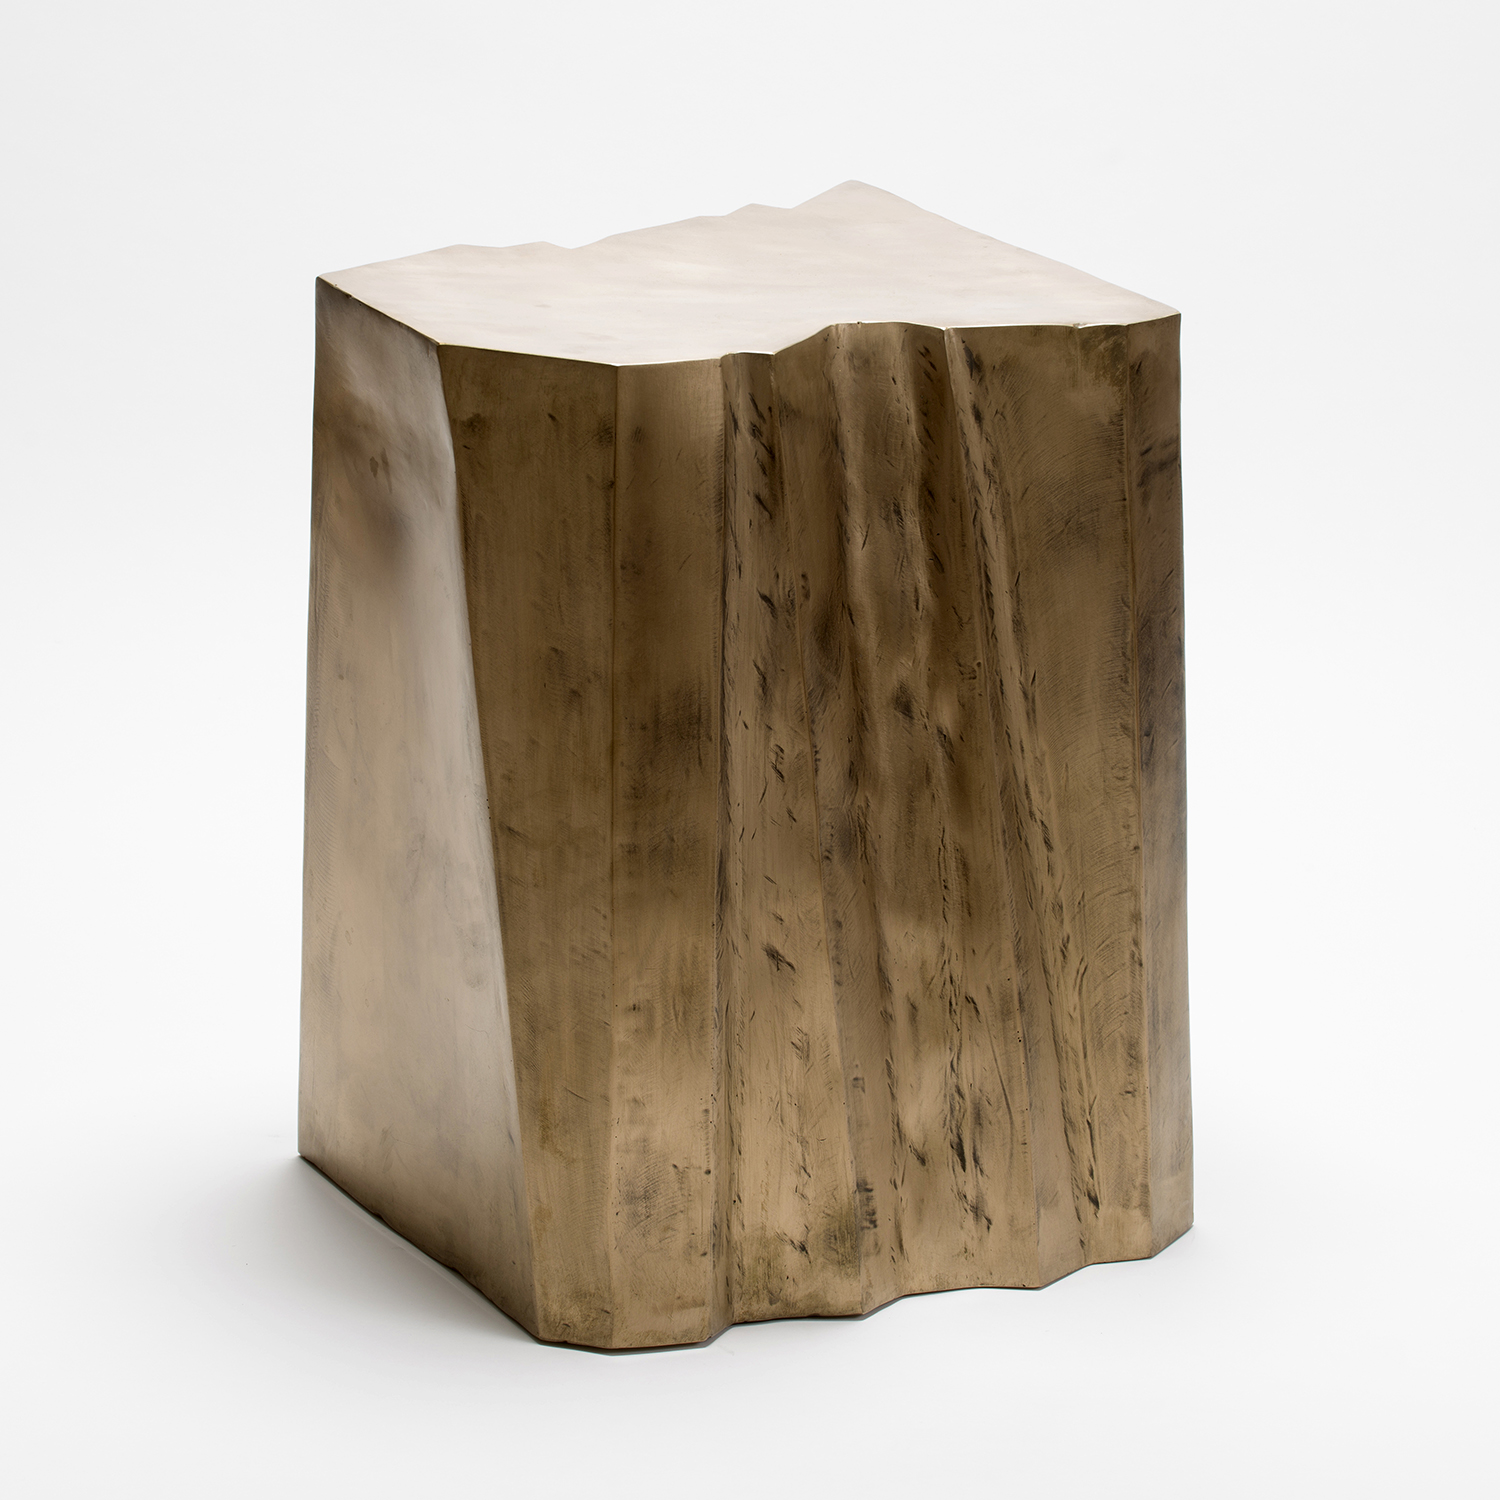 Cleaving Stool, 2014